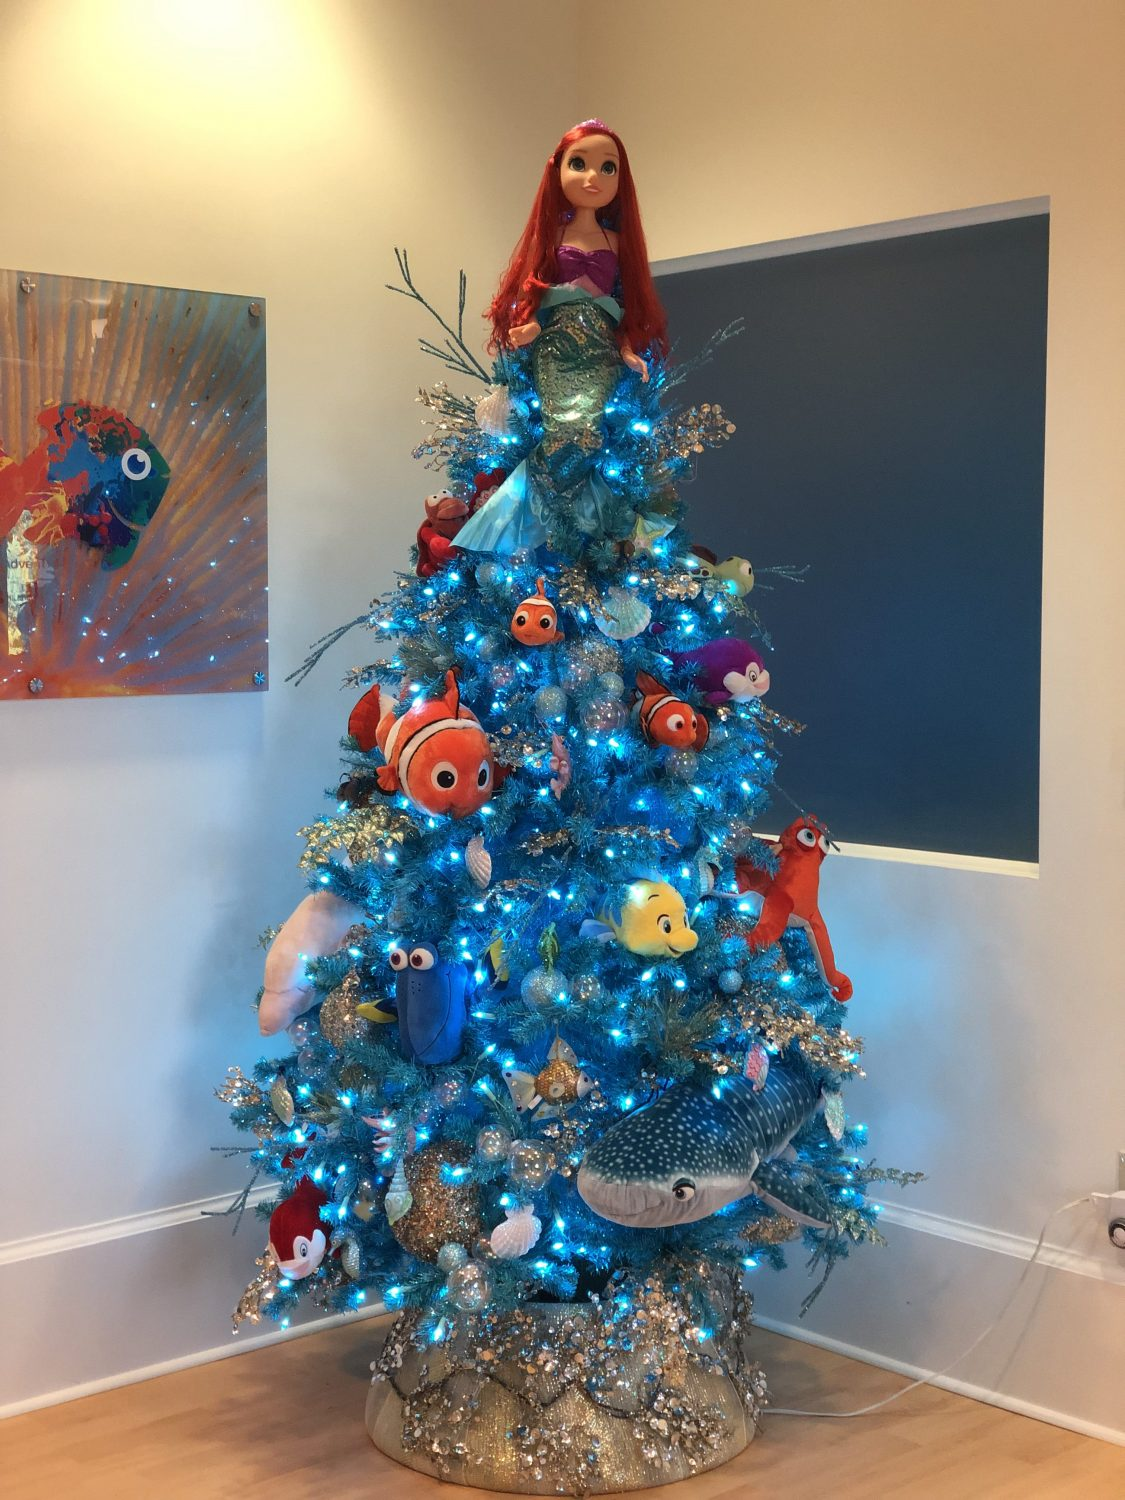 Green Thumb Interior Orlando Pediatric ER Under the Sea tree